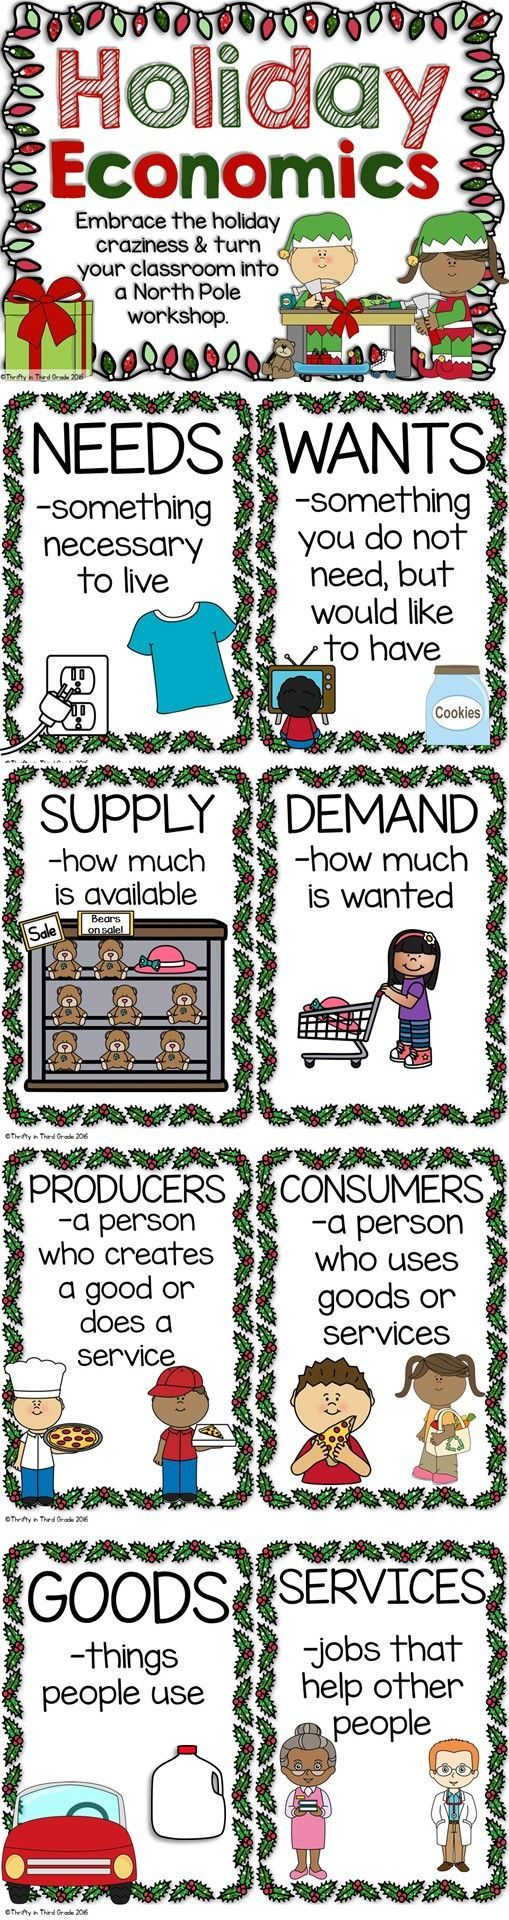 Supply and Demand, Markets and Prices